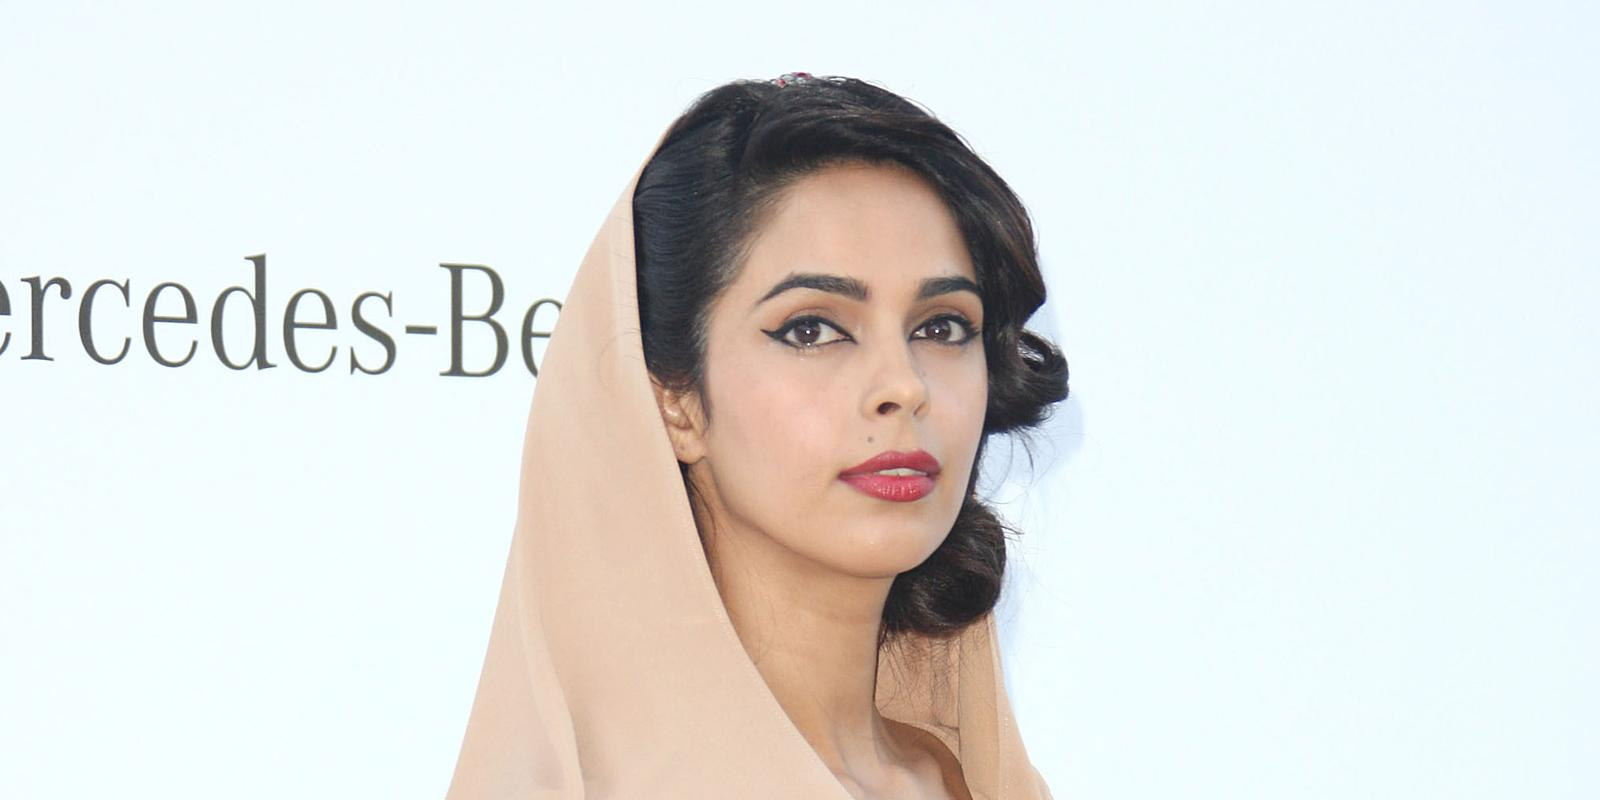 bollywood actress mallika sherawat 'gassed and beaten up' in